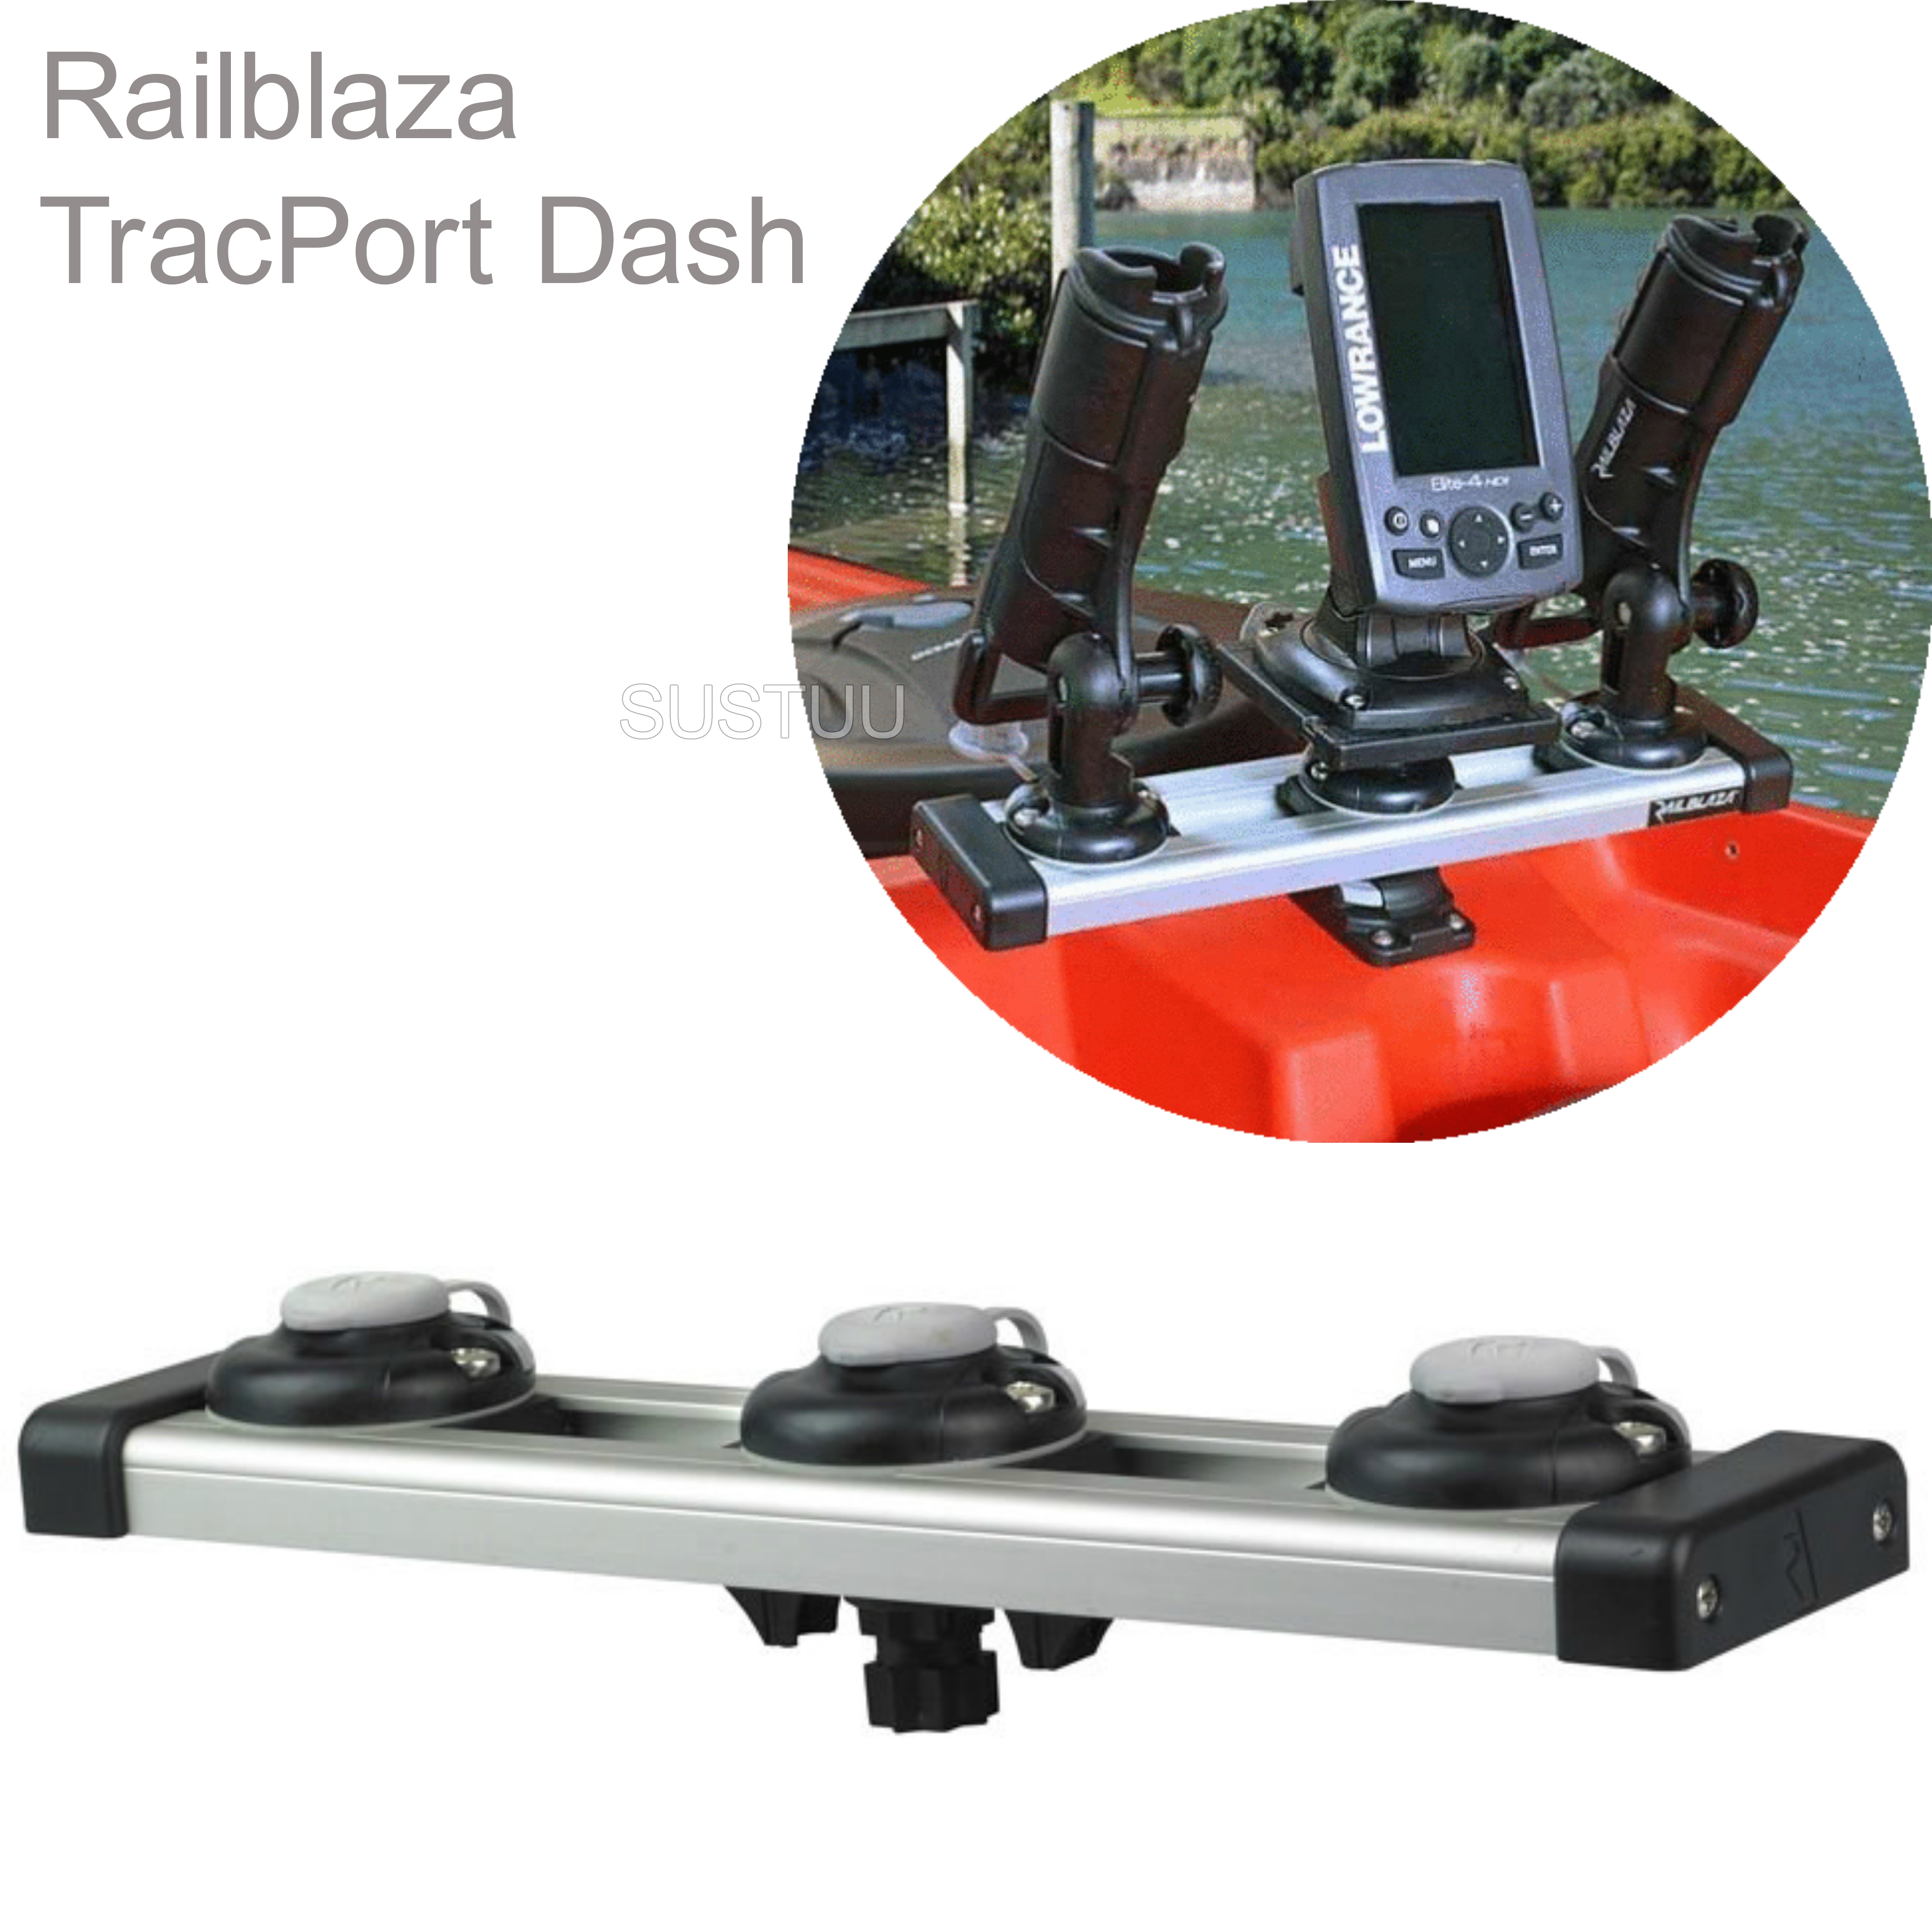 Railblaza TracPort Dash 350mm - Kayak Fishing Accessory